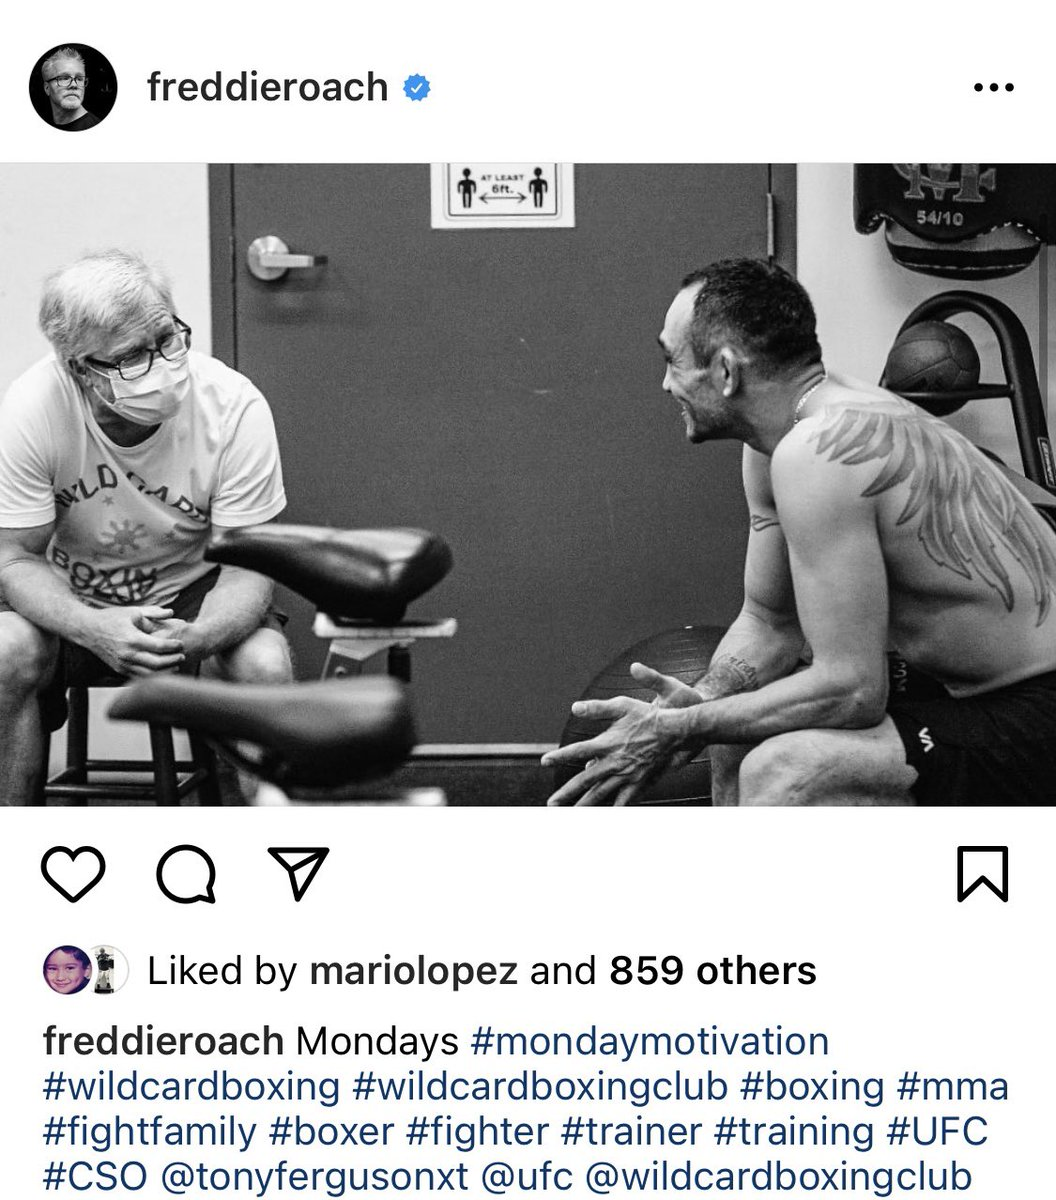 Freddie Roach worked with Tony Ferguson today. https://t.co/YaVe54b2Jw https://t.co/1o2TFOuuZv